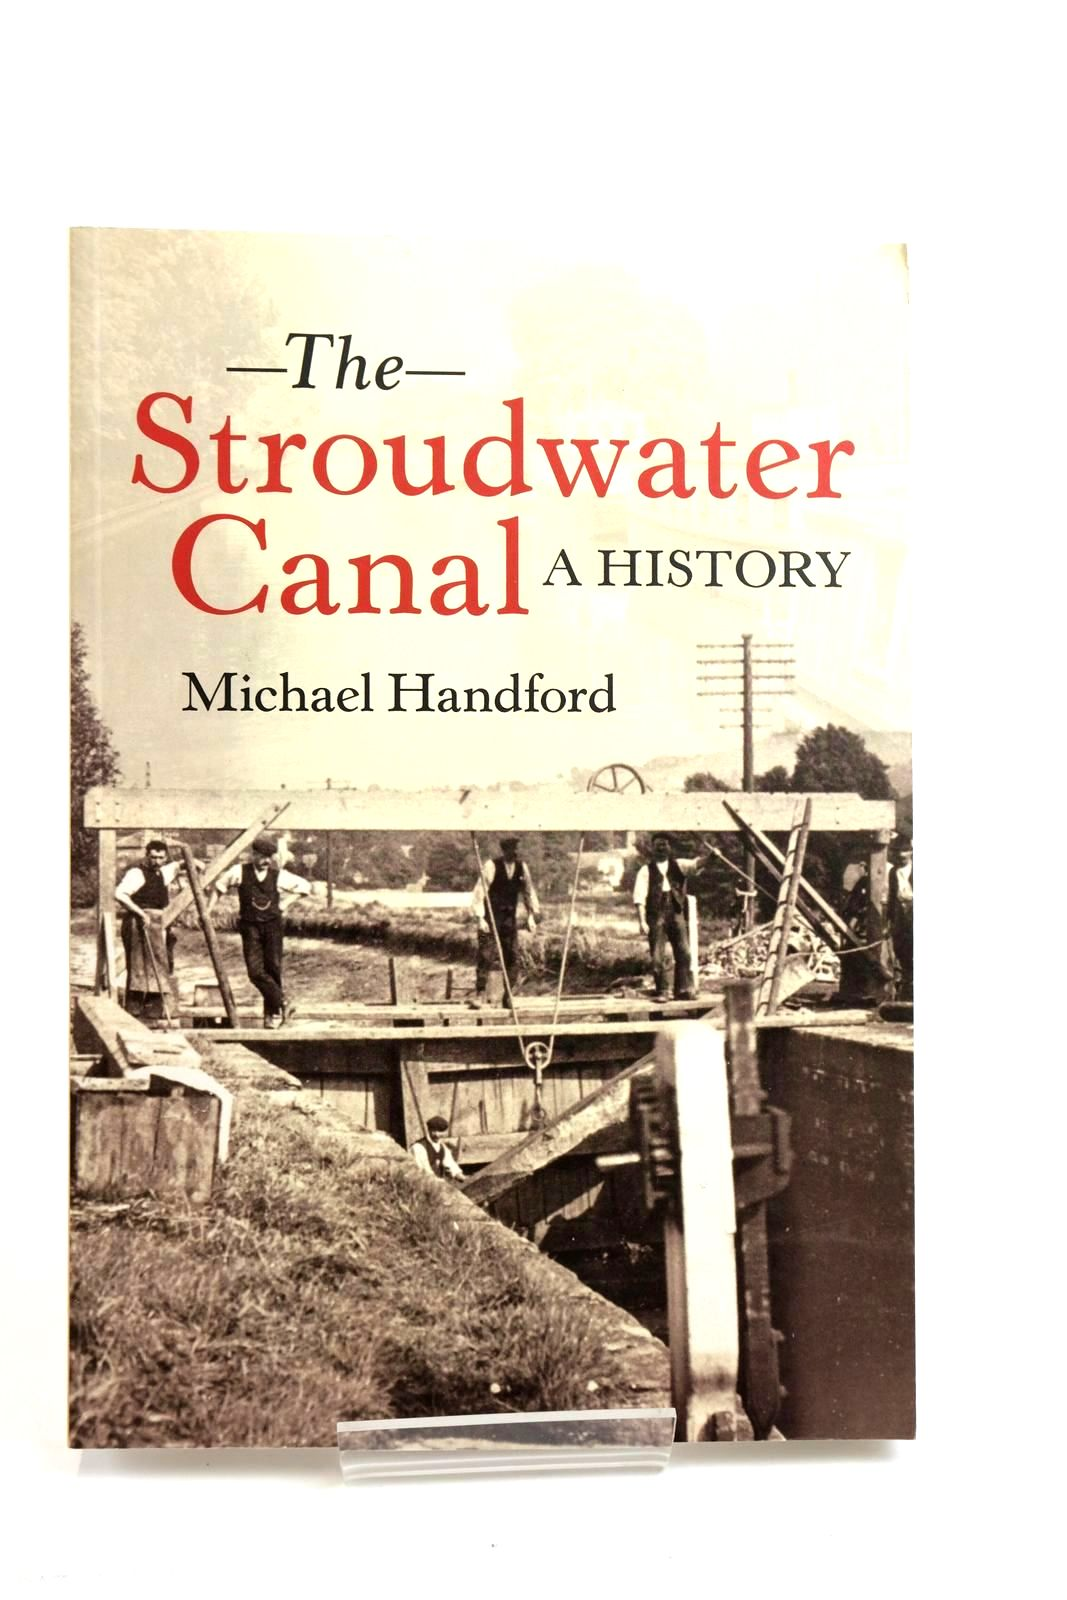 Photo of THE STROUDWATER CANAL A HISTORY- Stock Number: 1321480